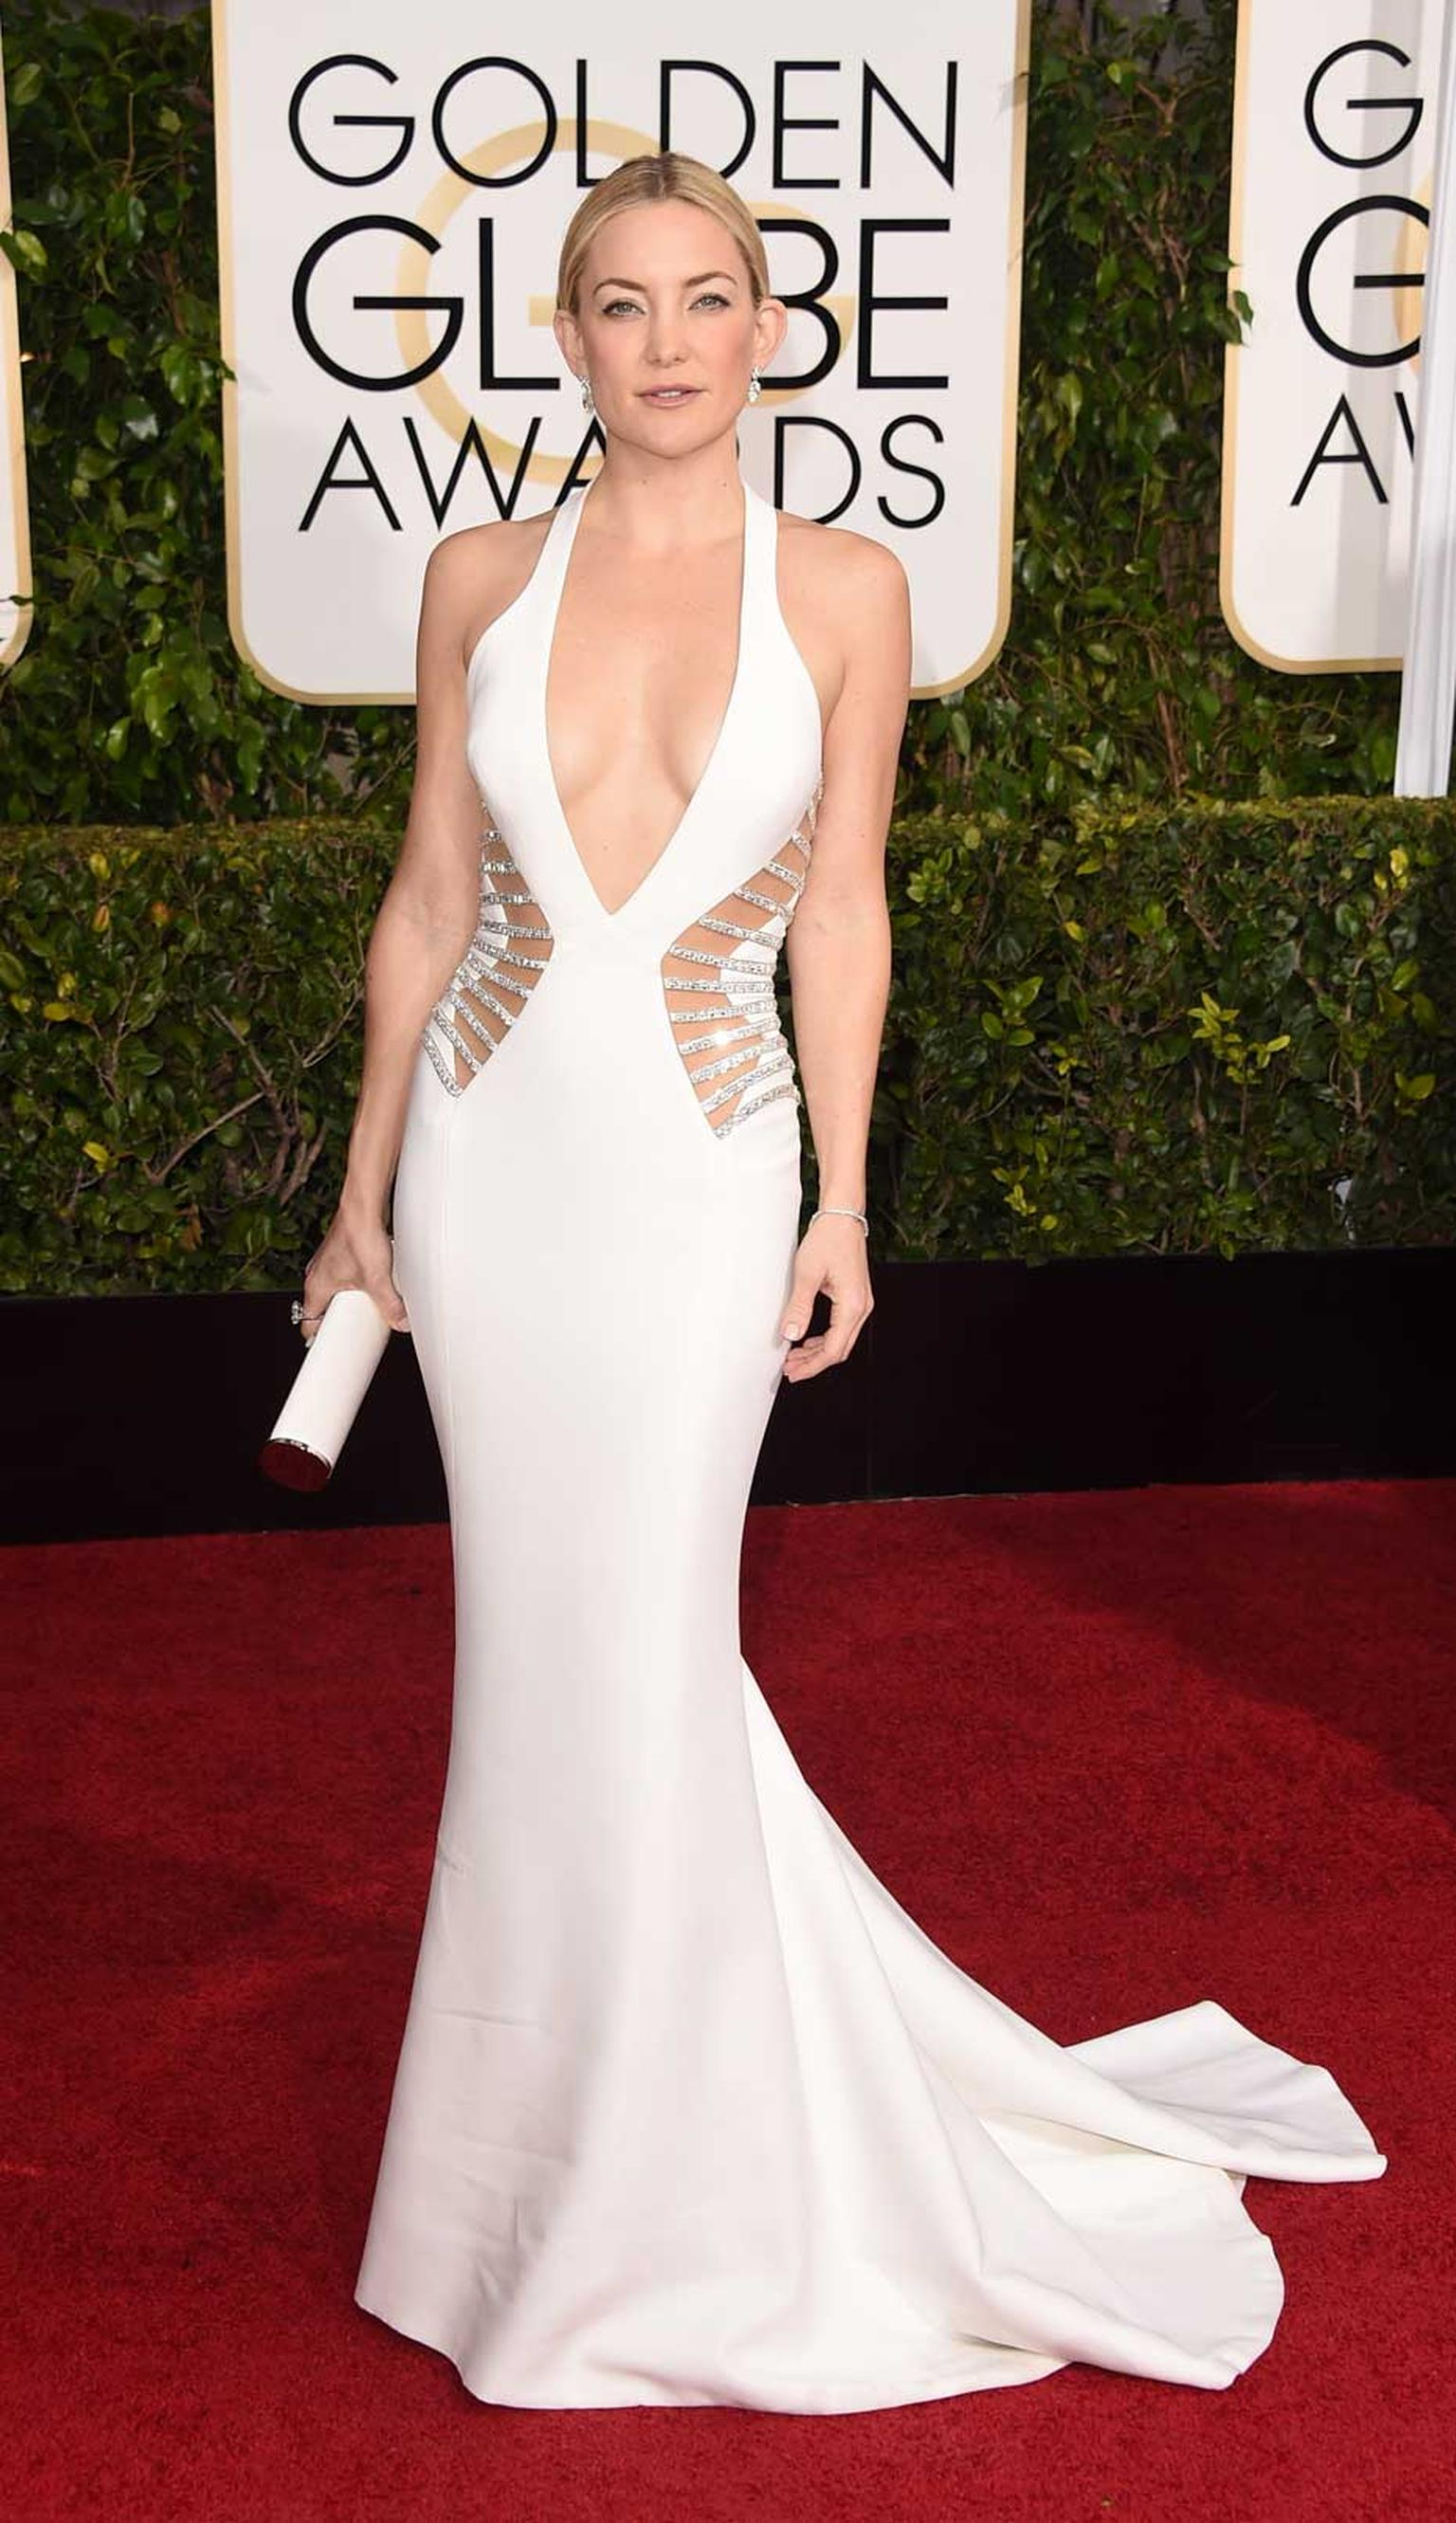 Kate Hudson wore a Forevermark diamond ring and bracelet to attend the 2015 Golden Globe Awards ceremony.